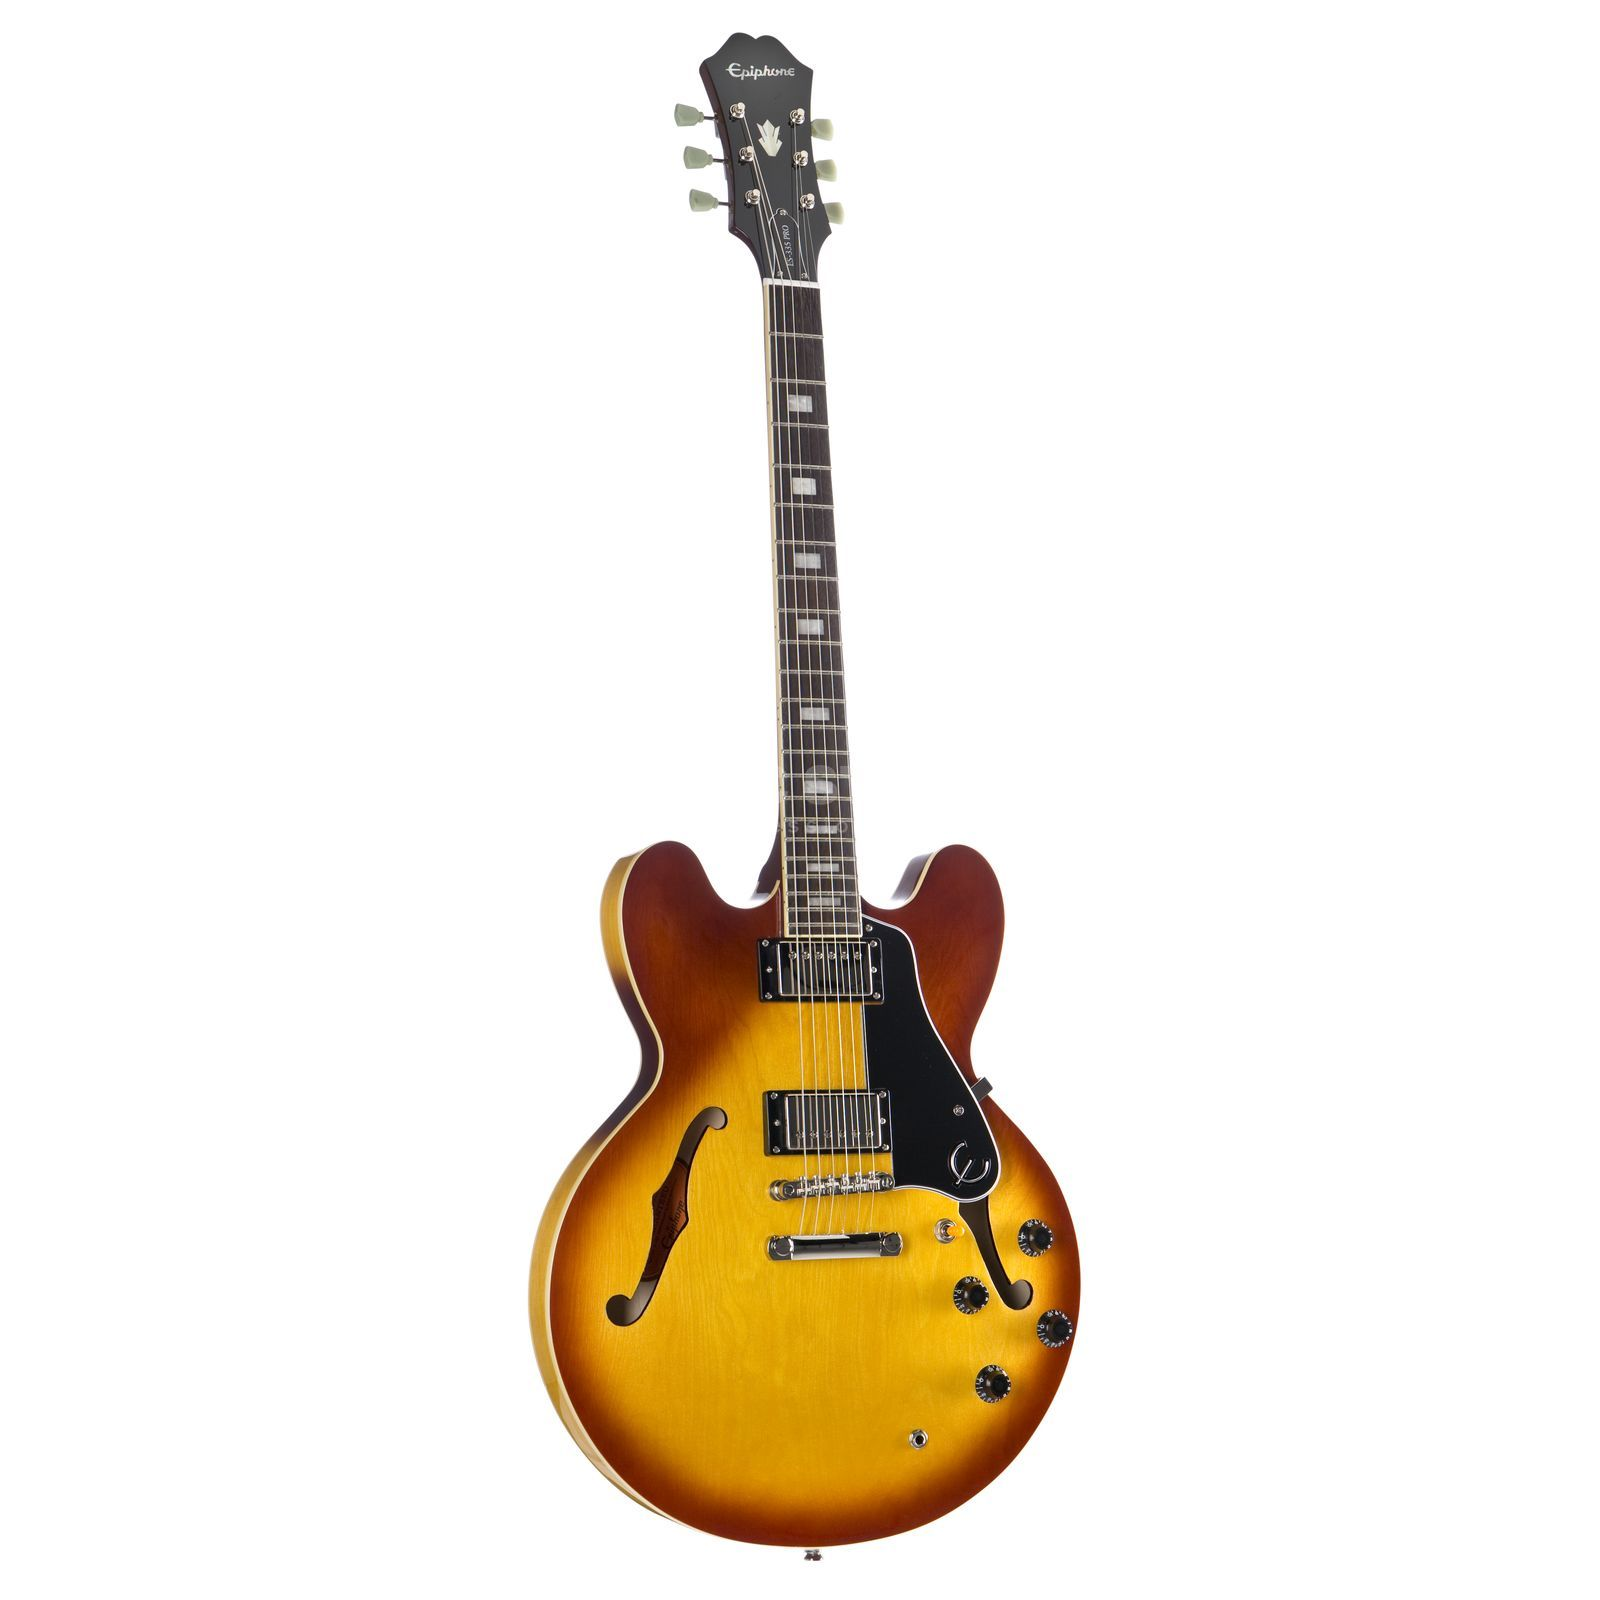 Epiphone ES-335 Pro Limited Edition Iced Tea Product Image